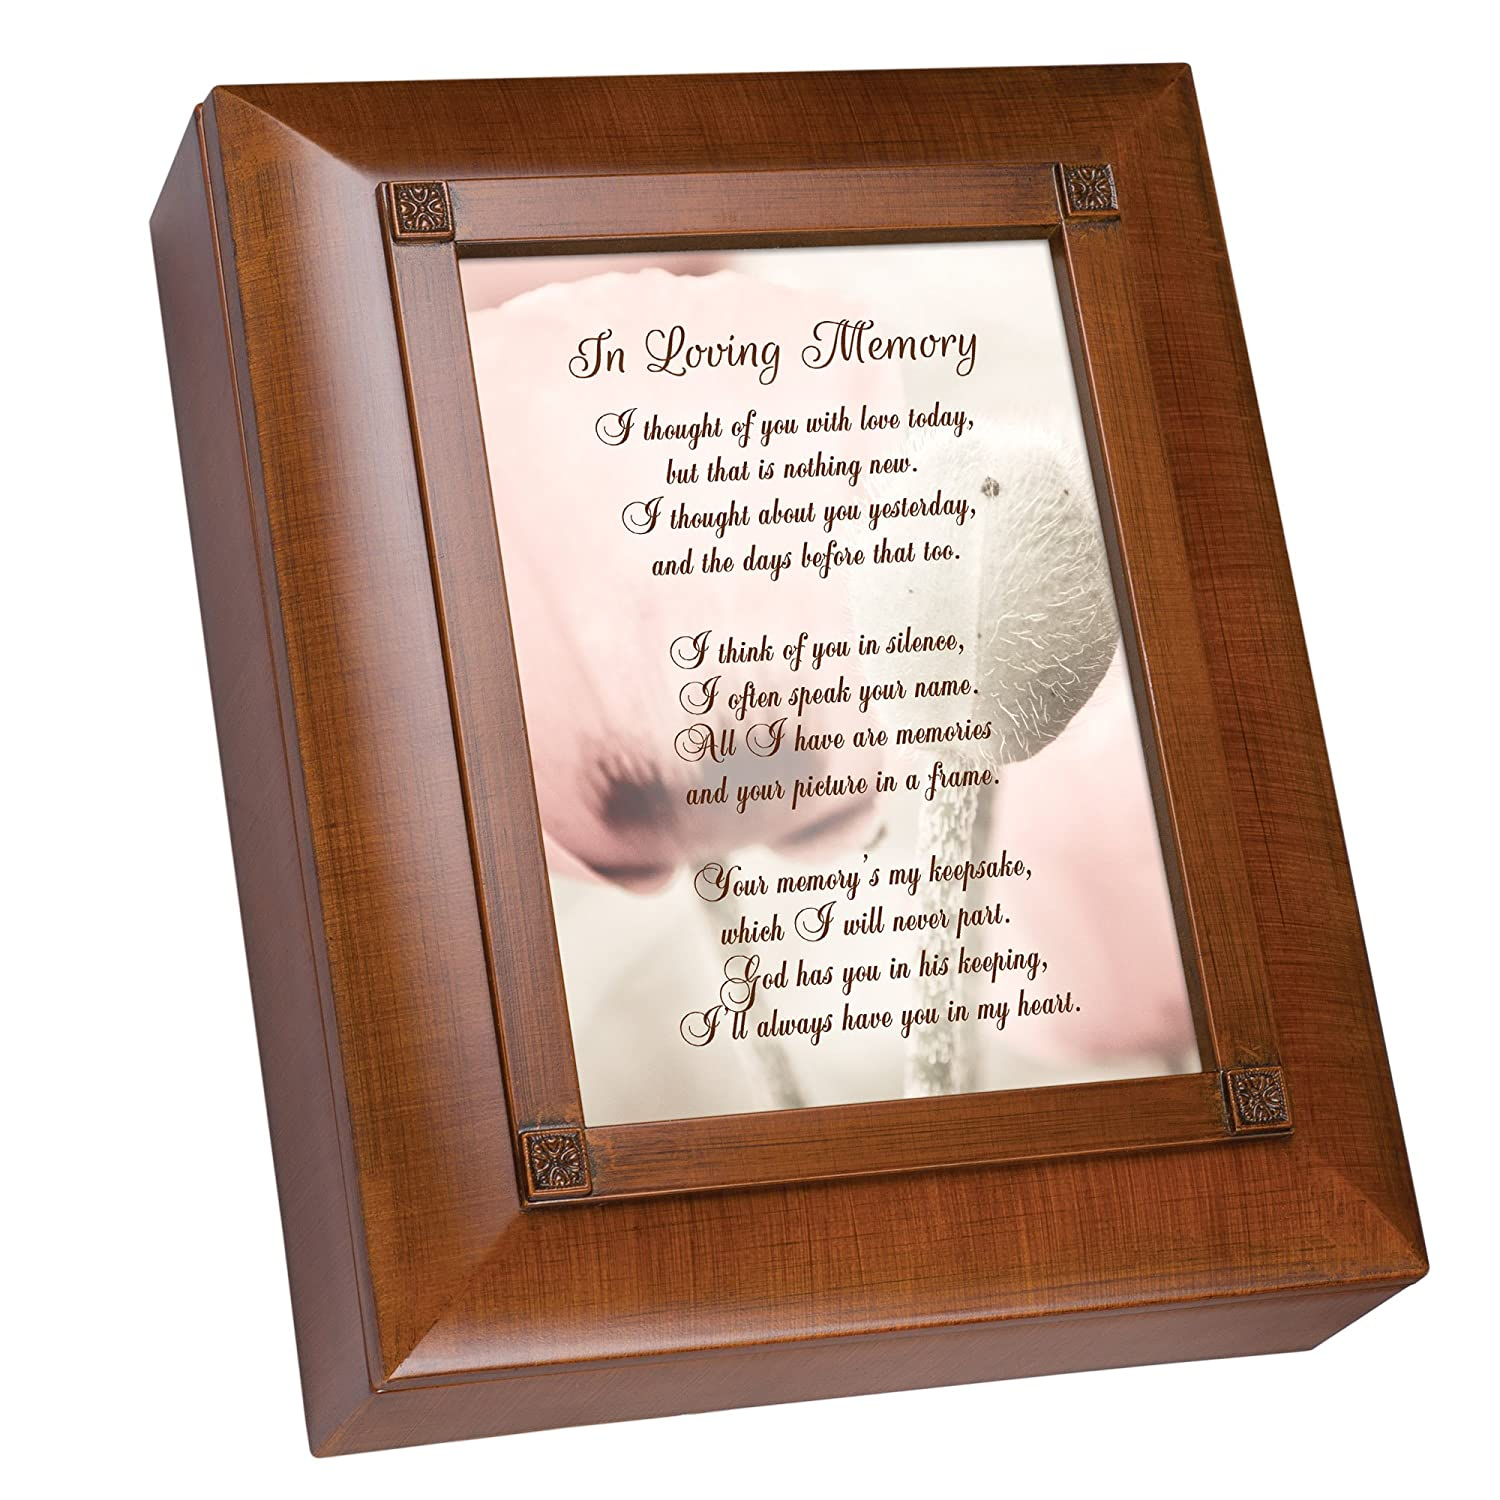 Cottage Garden Thought of You with Love Woodgrain Remembrance Keepsake Box